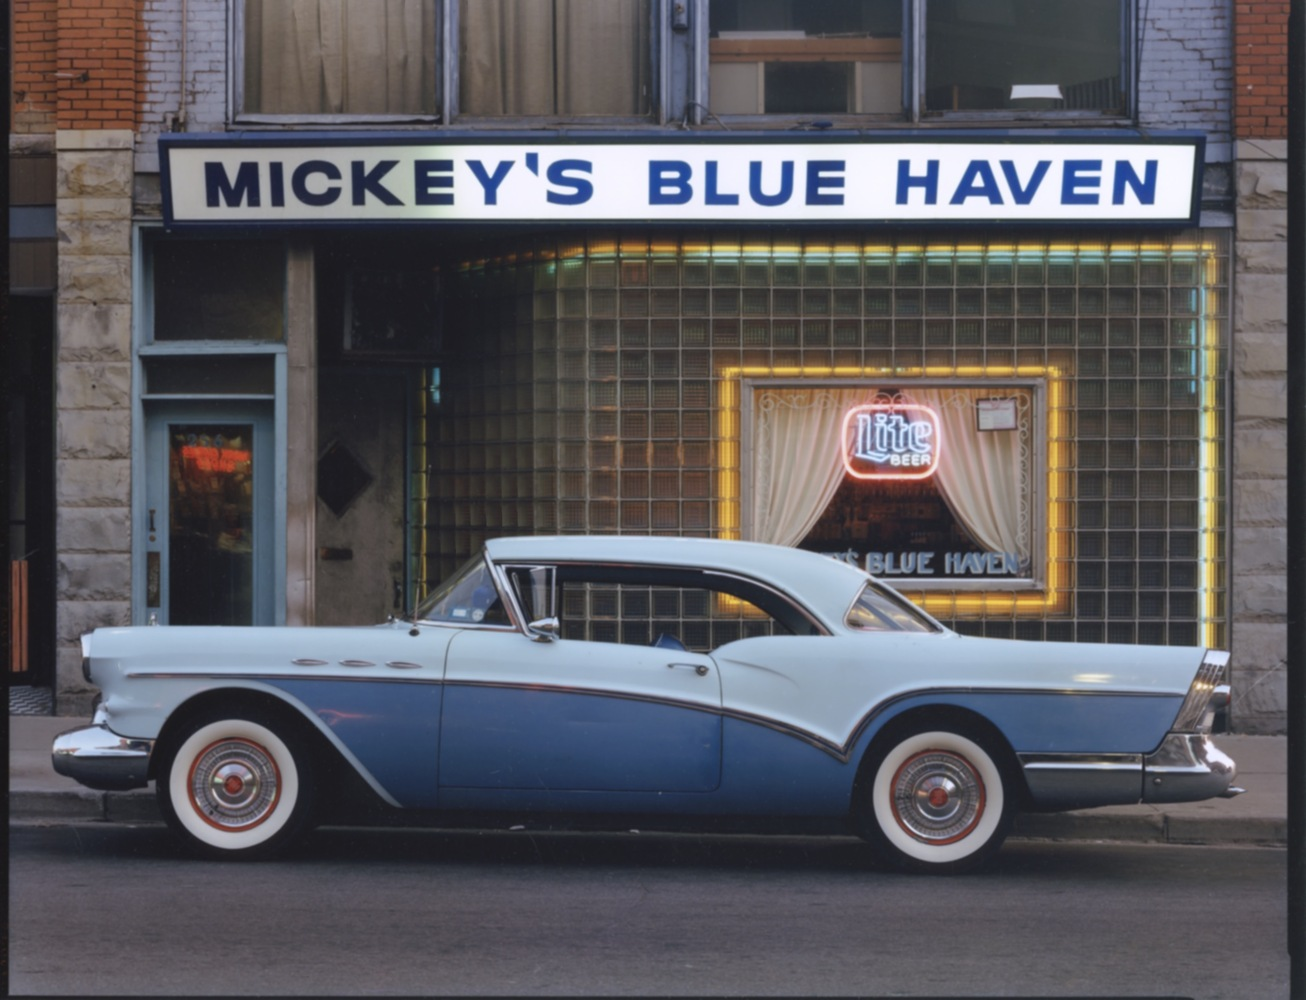 1957 Buick Special Riviera Coupe, Mickey's Blue Haven, Johnson  City, NY, c. 1987